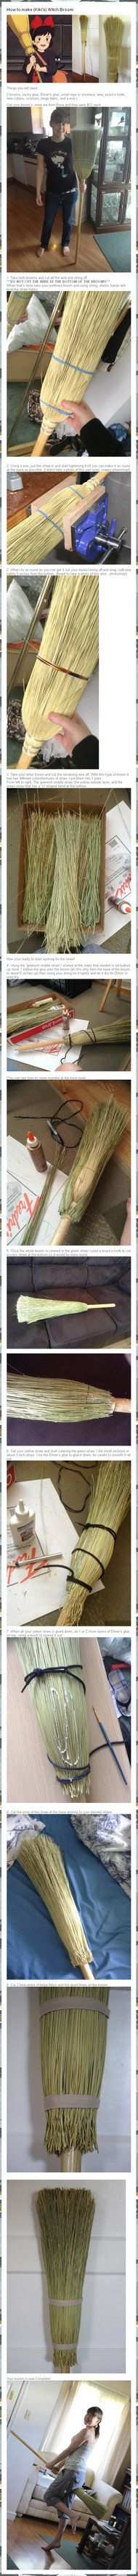 how to redo a broom to look like kiki's broom from kiki's delivery service